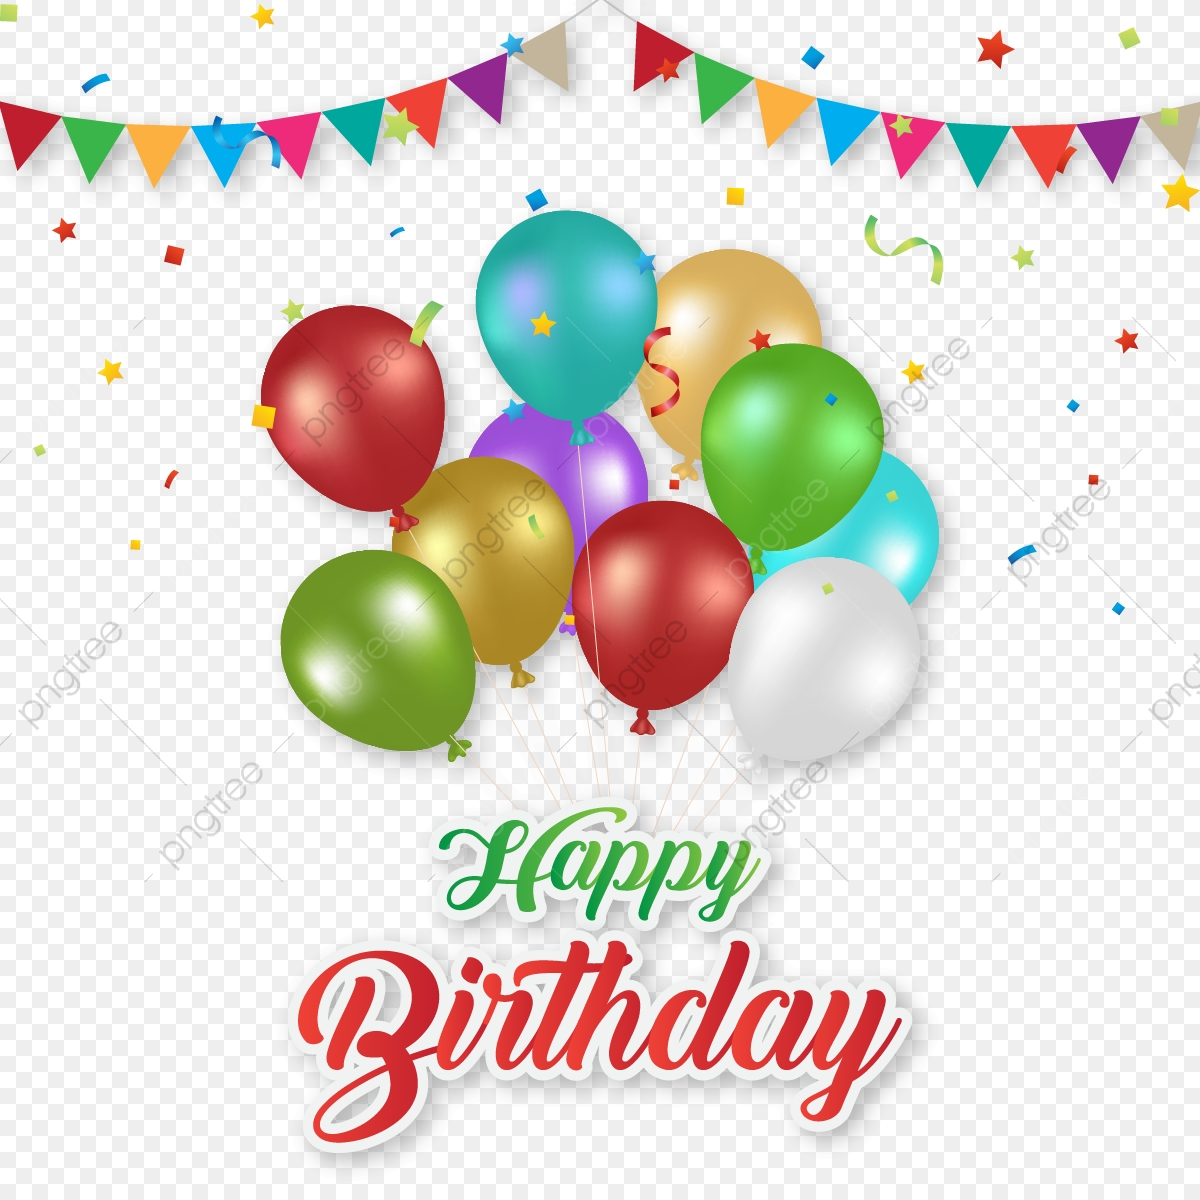 Commercial Use Resource Upgrade To Premium Plan And Get License AuthorizationUpgradeNow Happy Birthday Wishes